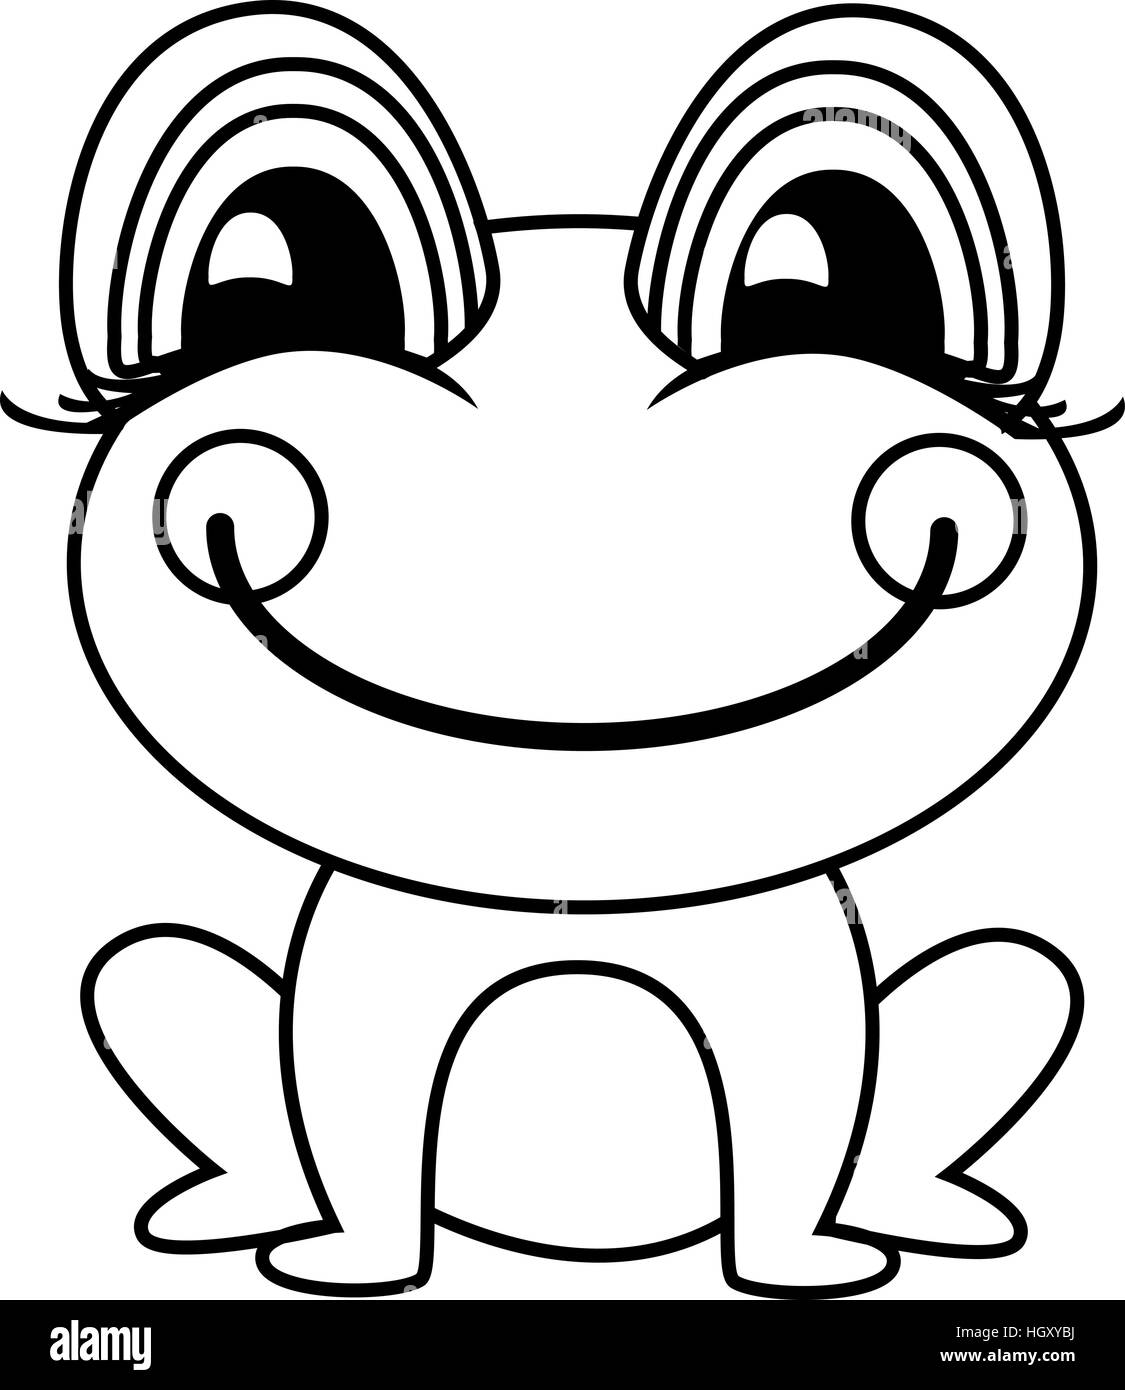 simple frog or toad vector illustration stock vector art rh alamy com Tree Frog Vector Cute Frog Silhouette